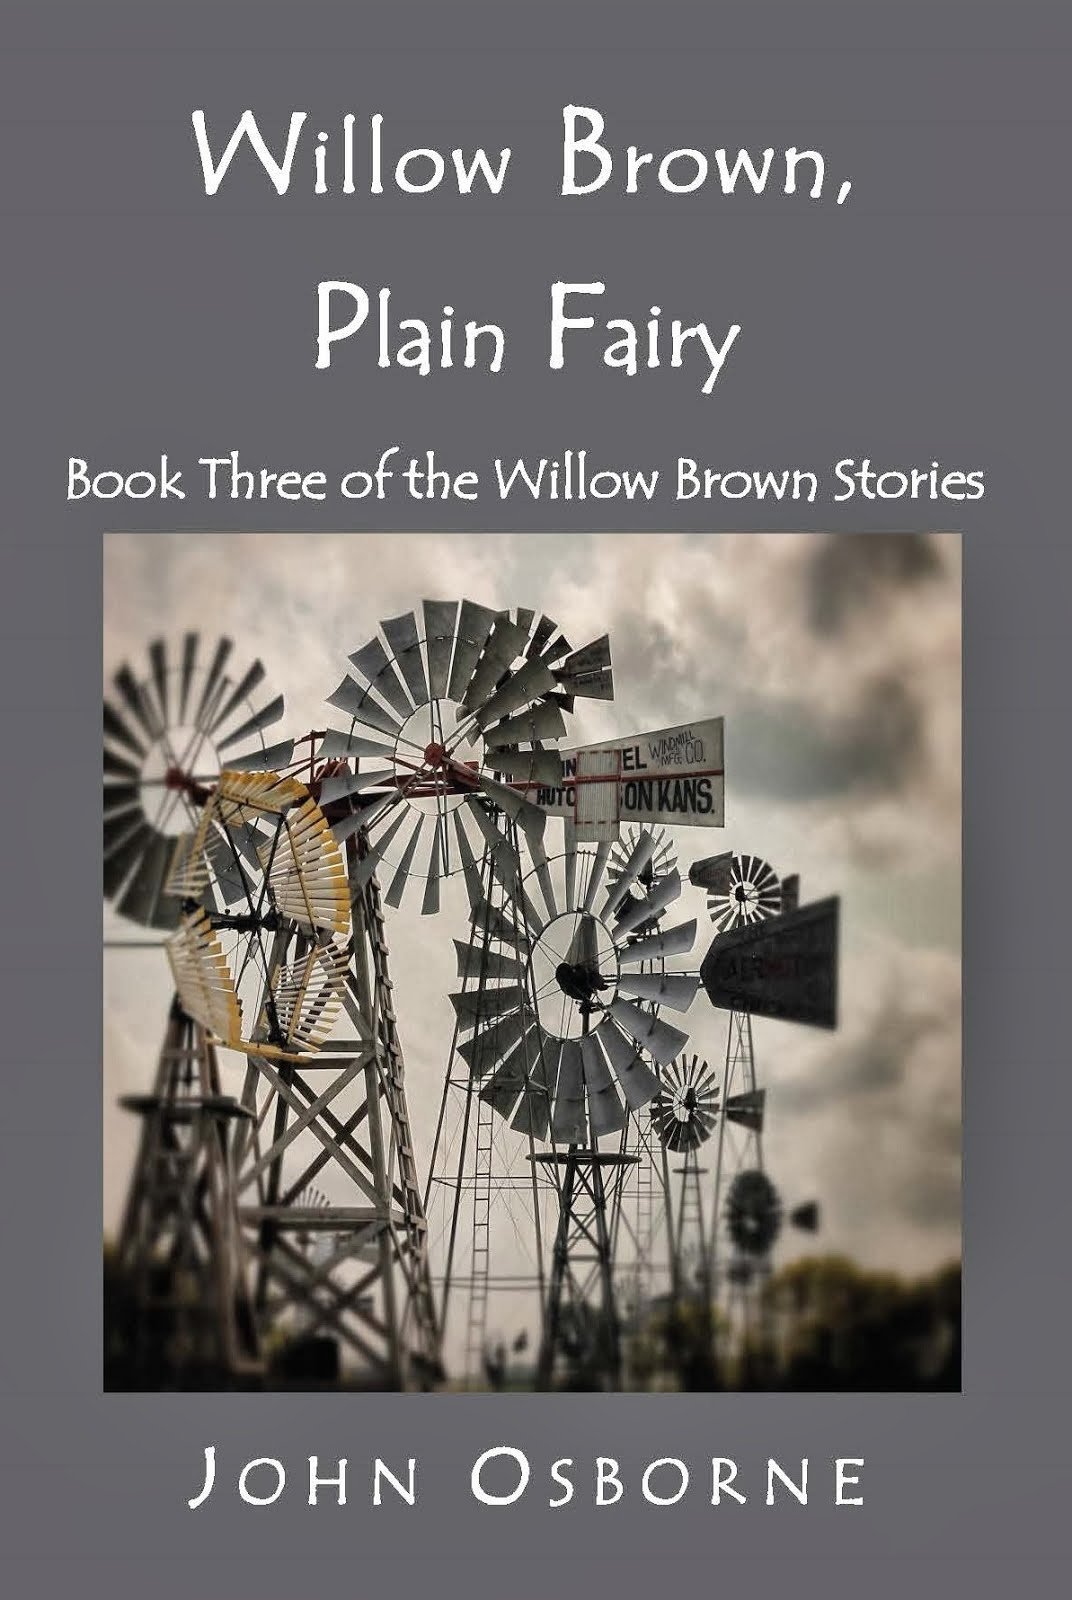 Plain Fairy is avail. at Amazon.com and other outlets.